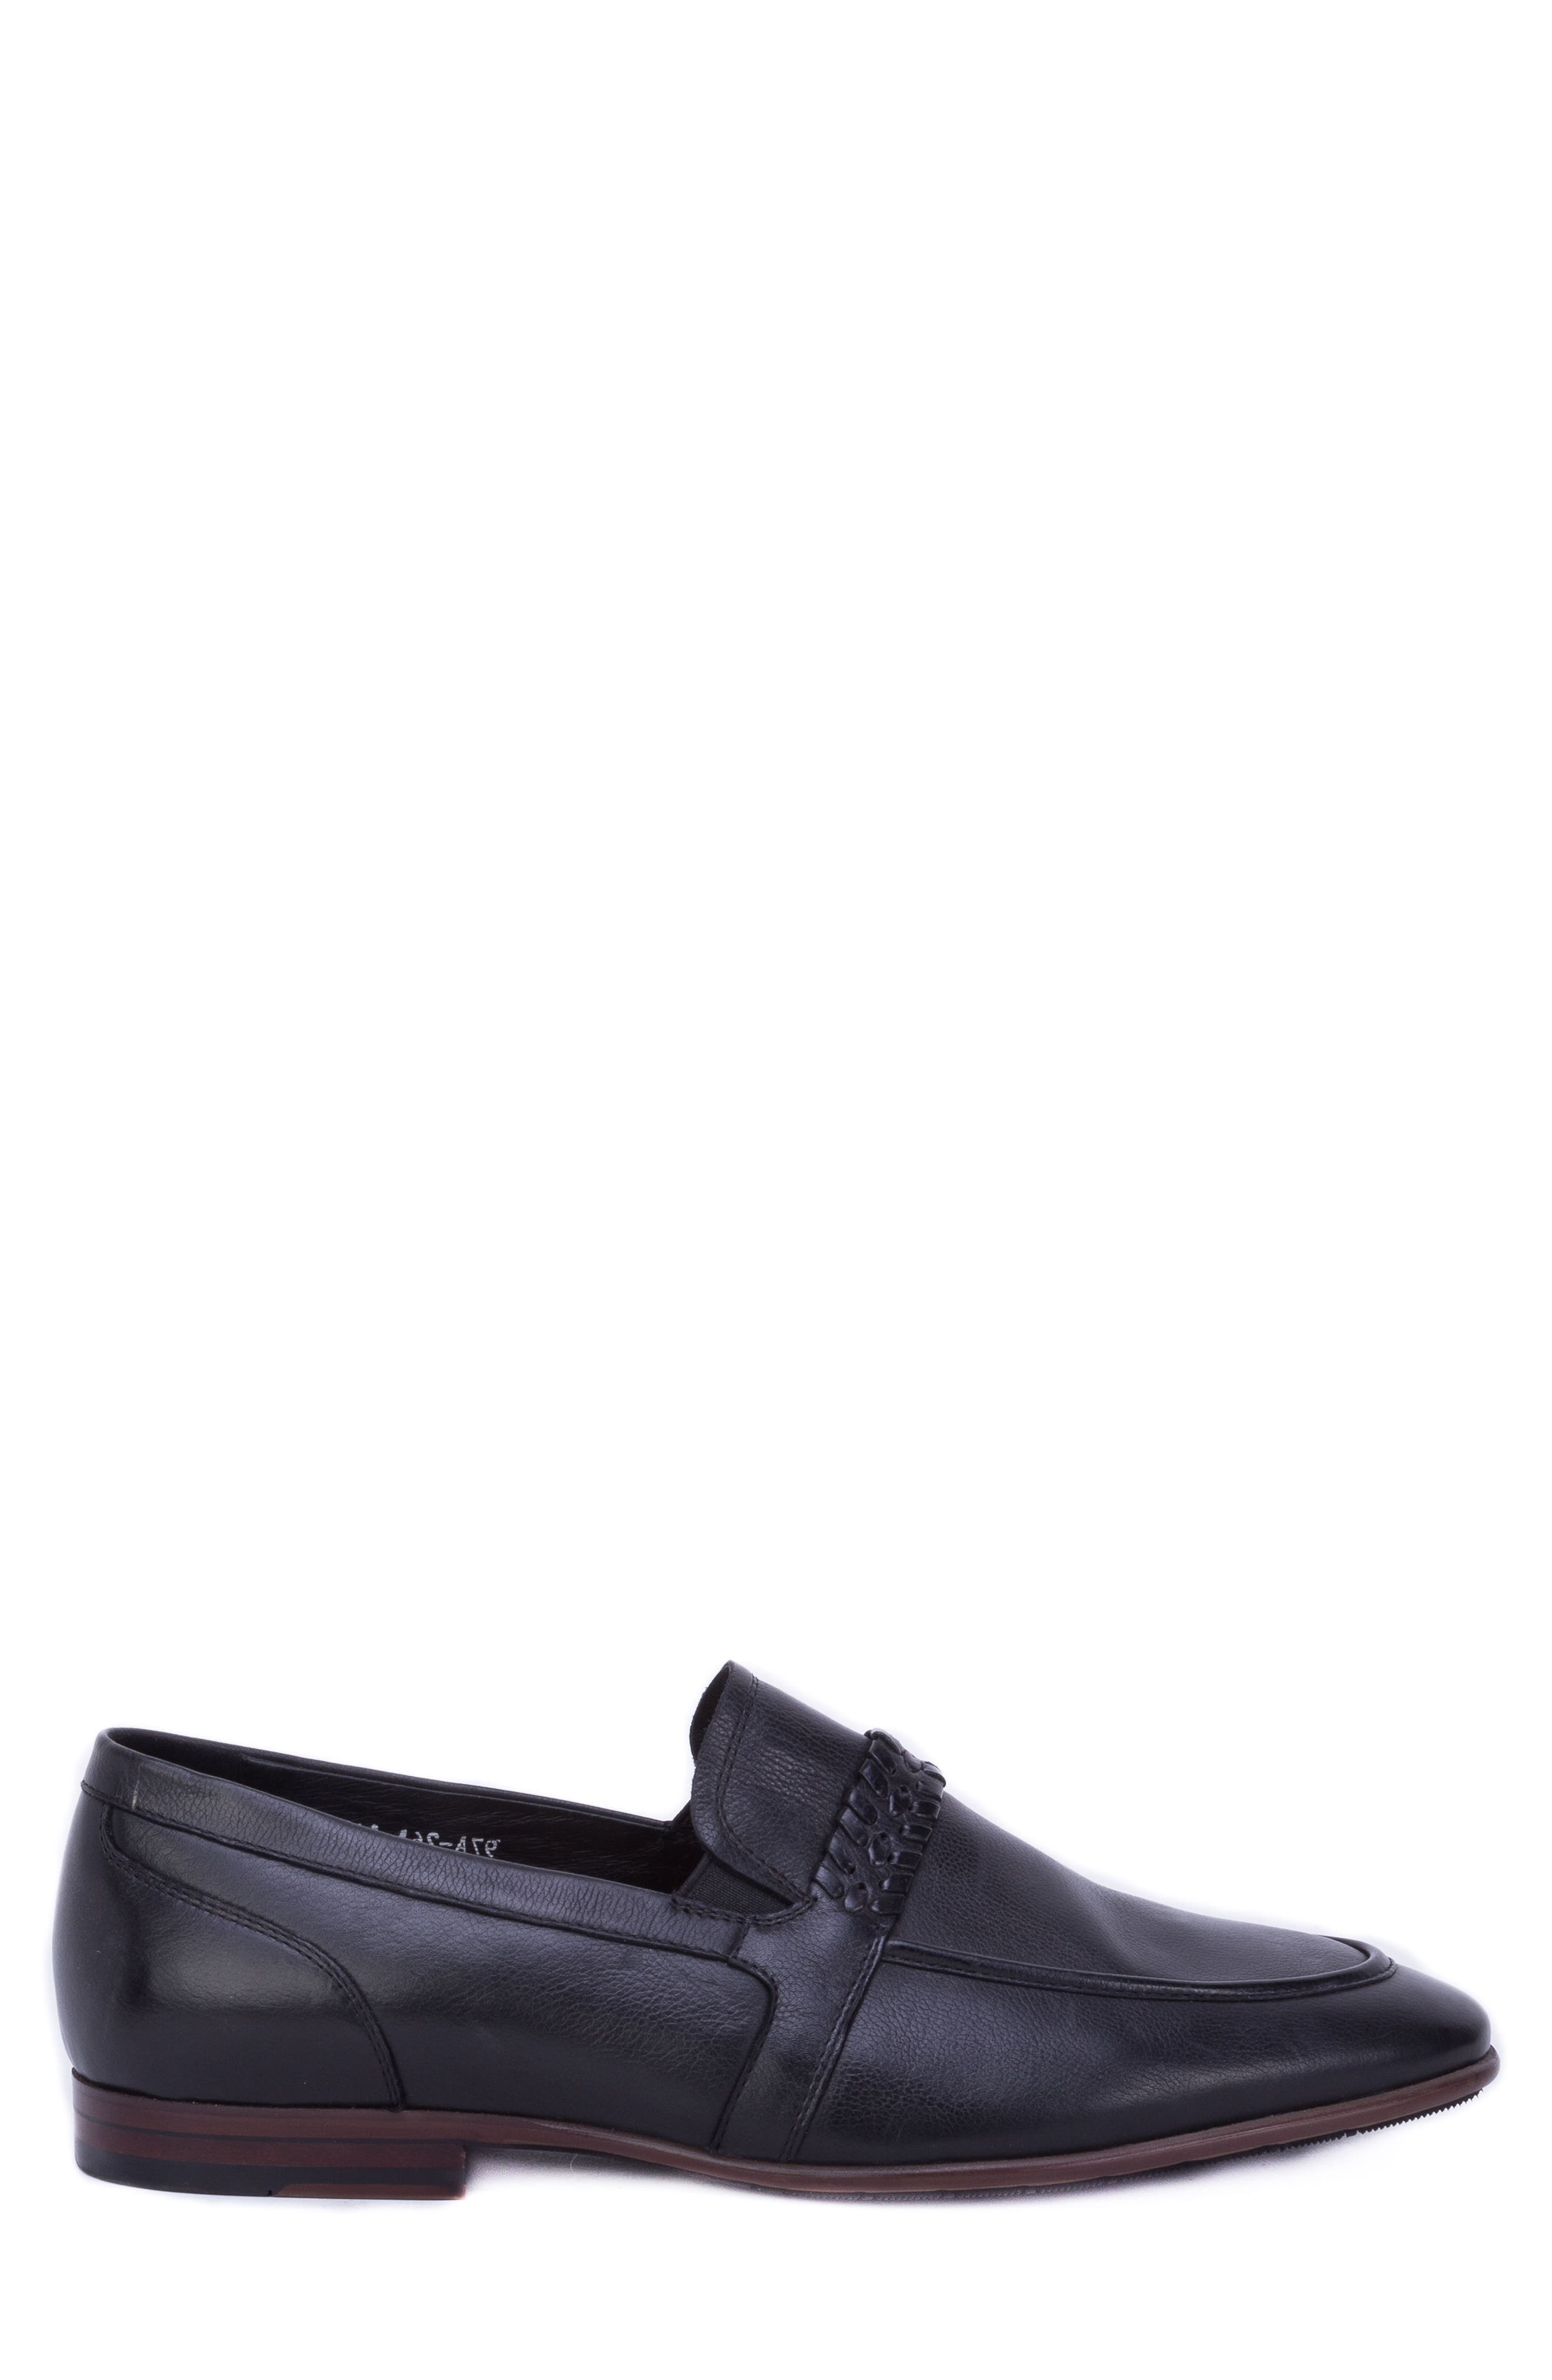 Robinson Whipstitch Apron Toe Loafer,                             Alternate thumbnail 3, color,                             BLACK LEATHER